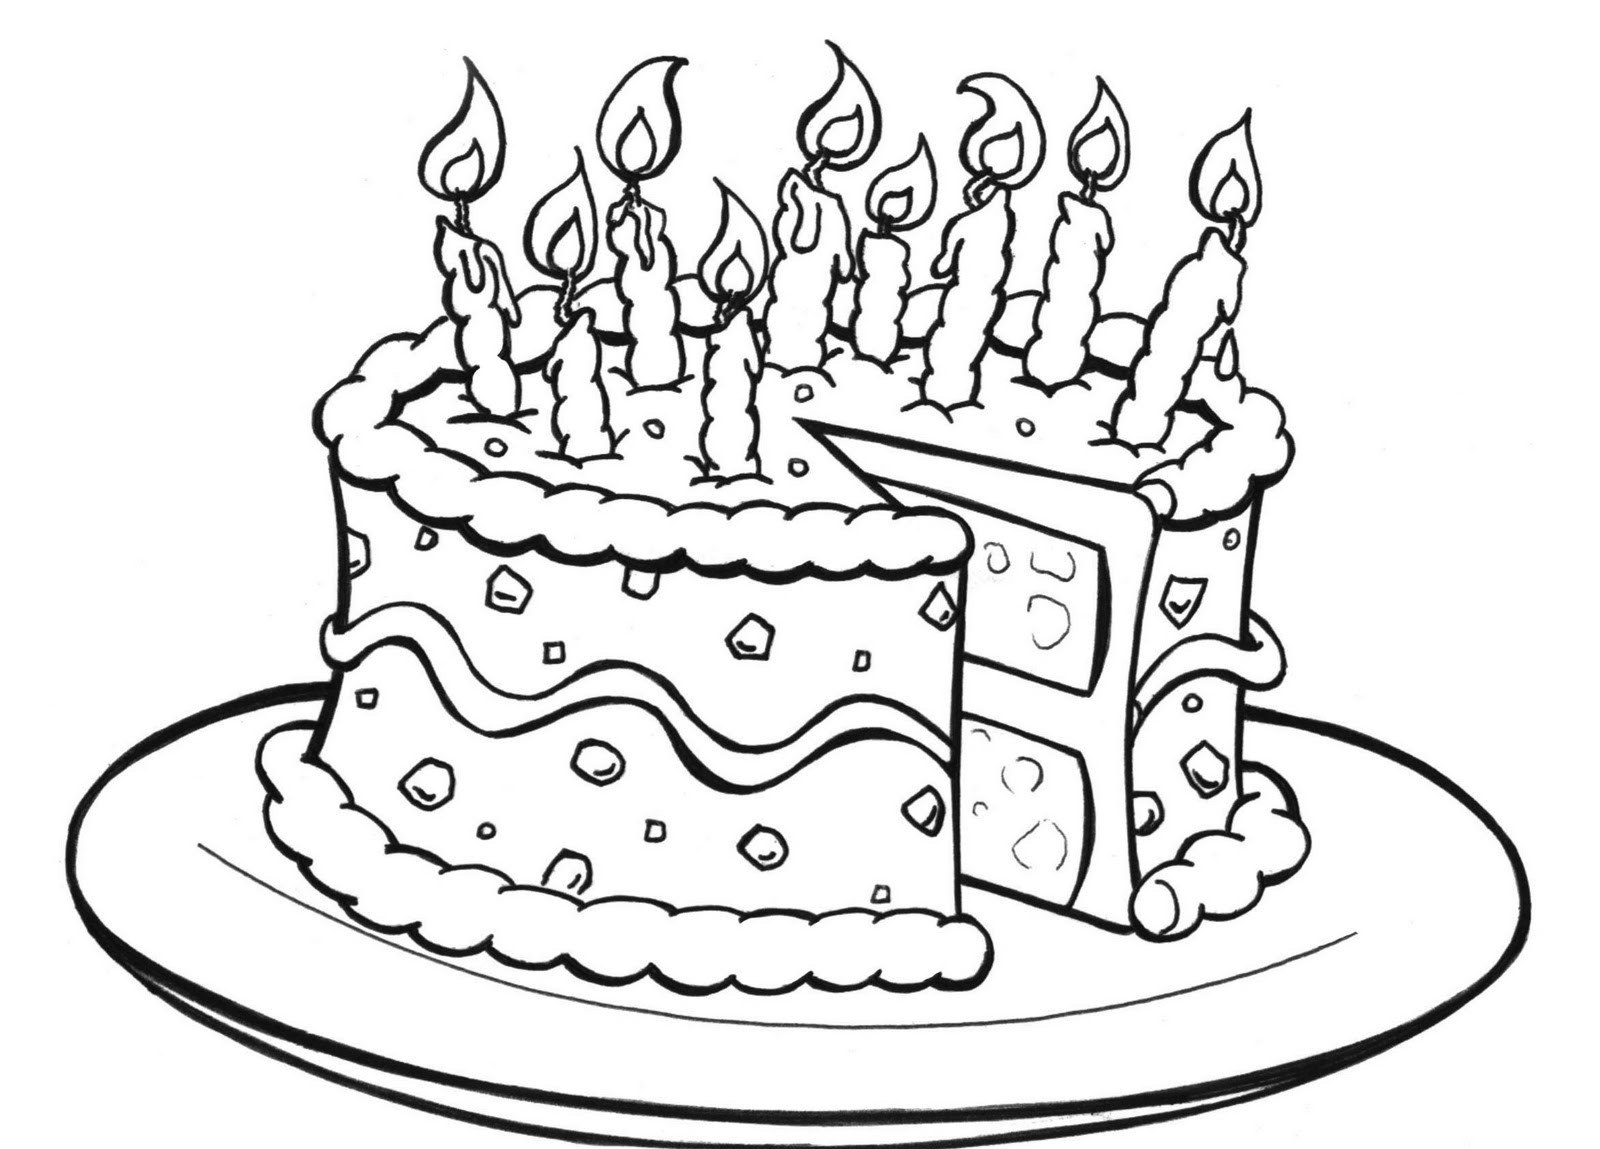 birthday cake coloring page ; free-printable-birthday-cake-coloring-pages-for-kids